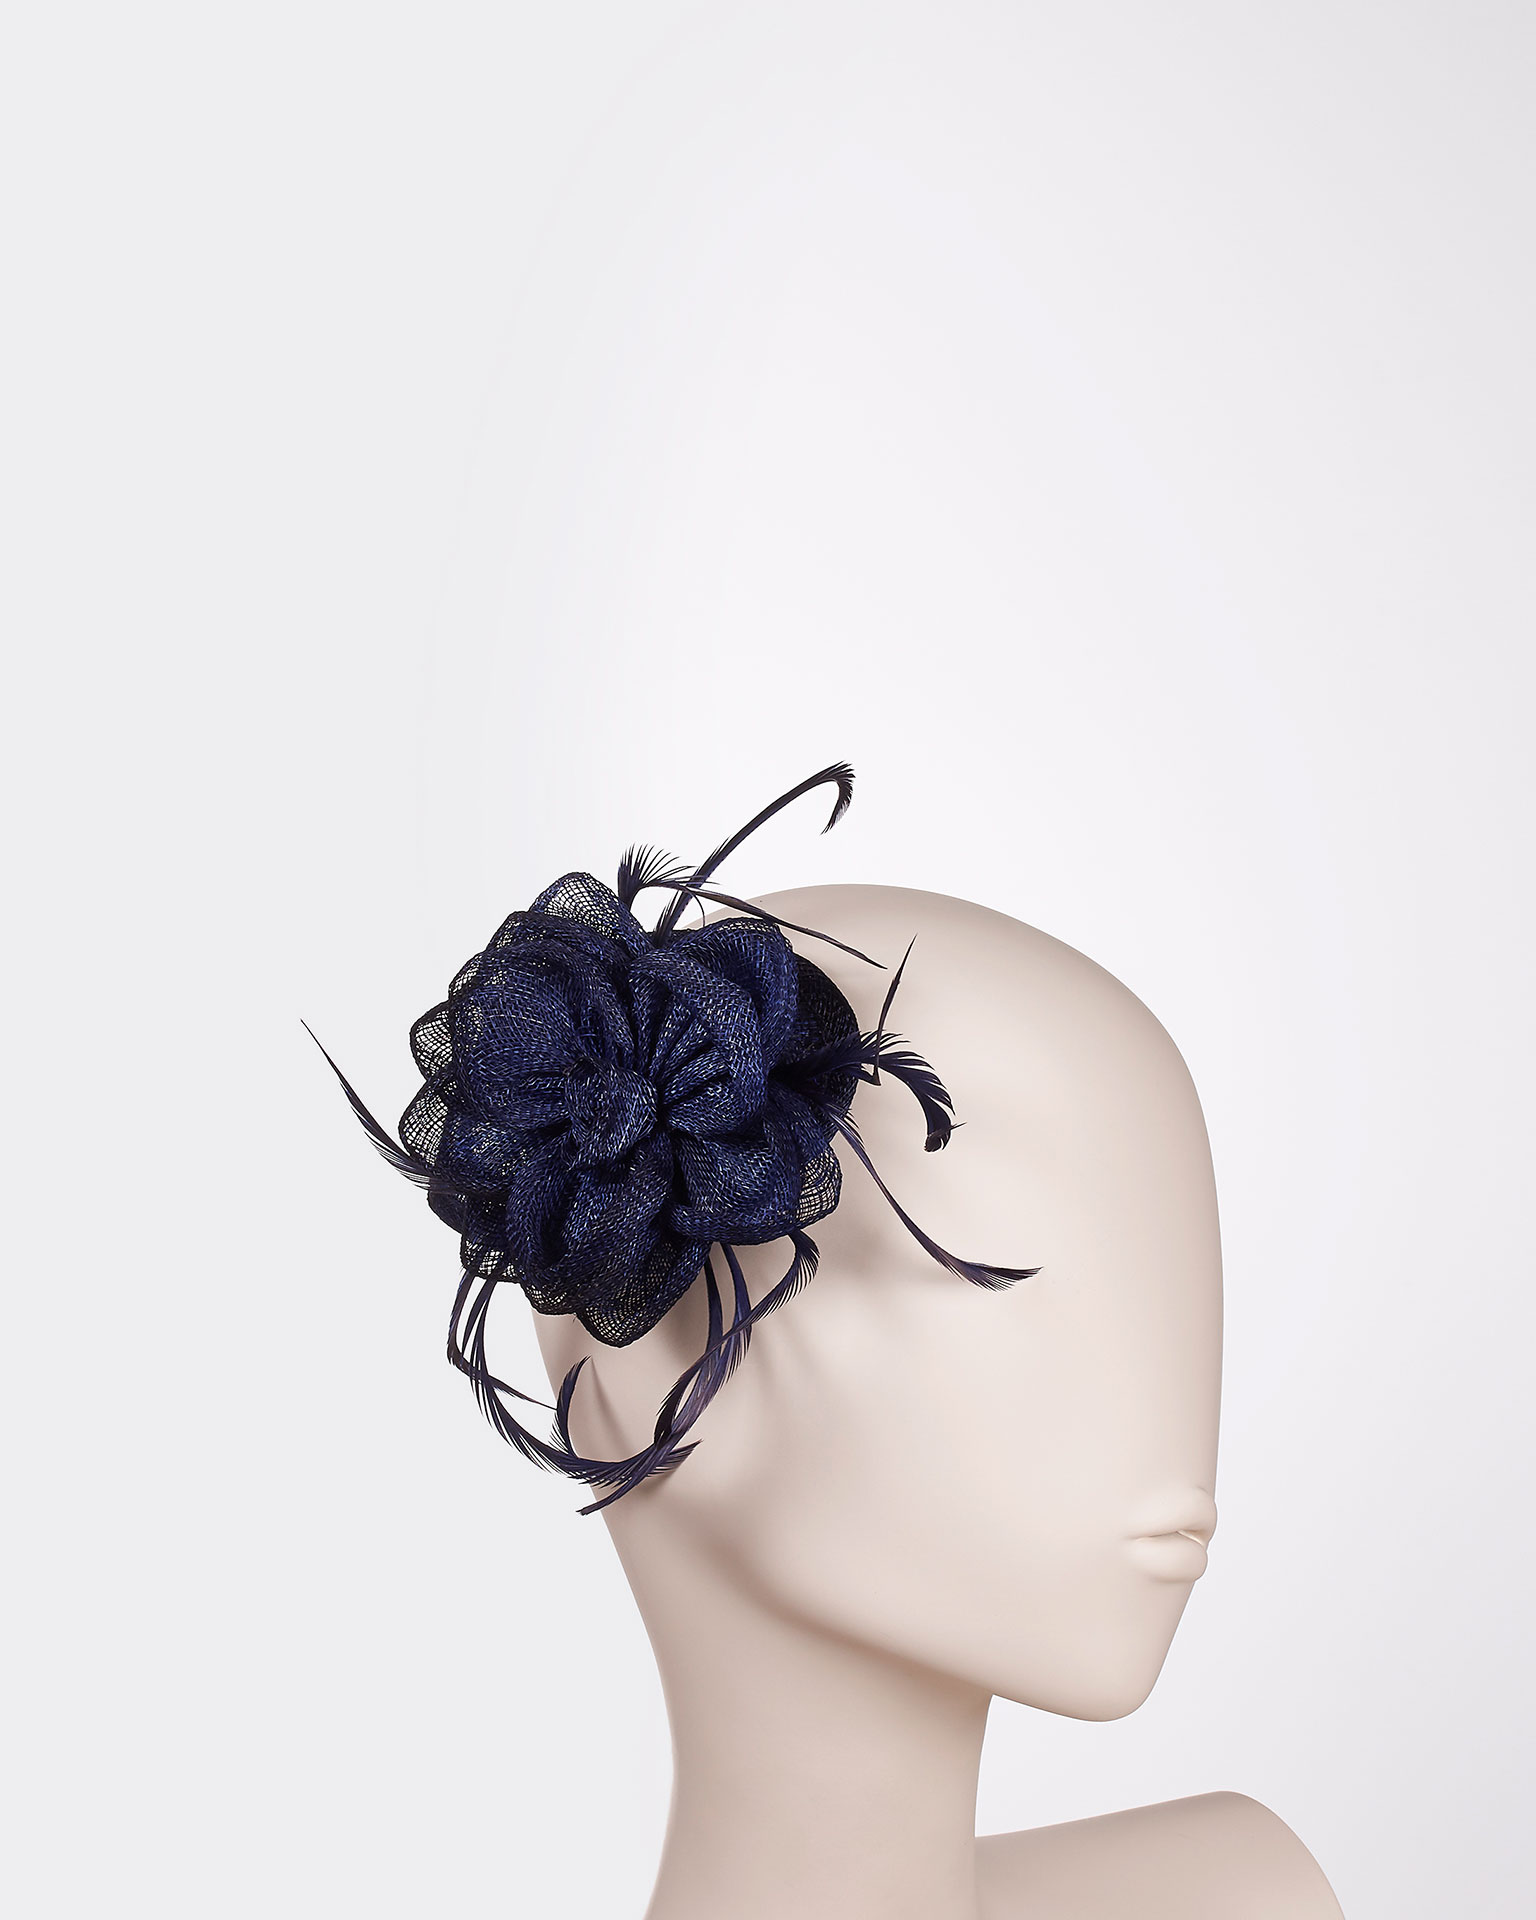 Sinamay headpiece with feather detail. Available in black, navy blue, cobalt, blue, silver, nude, red, coral, fuchsia and yellow. 2019 FIESTA AIRE BARCELONA Collection.